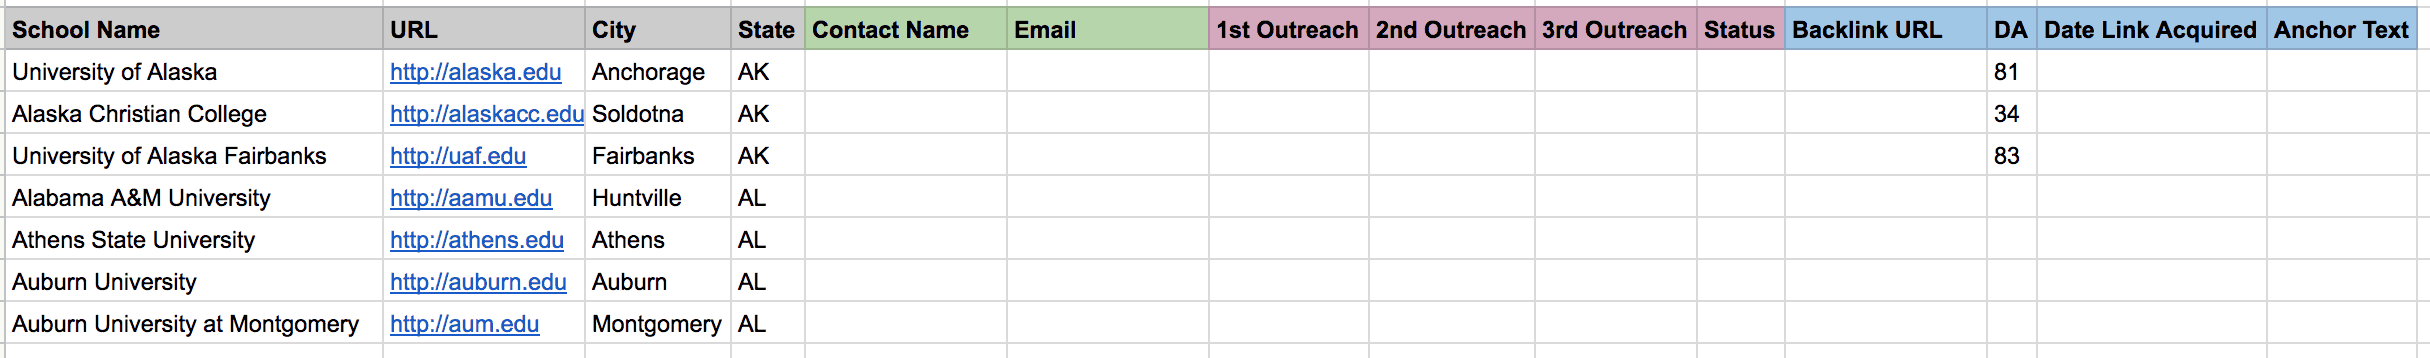 scholarship link building tracking sheet